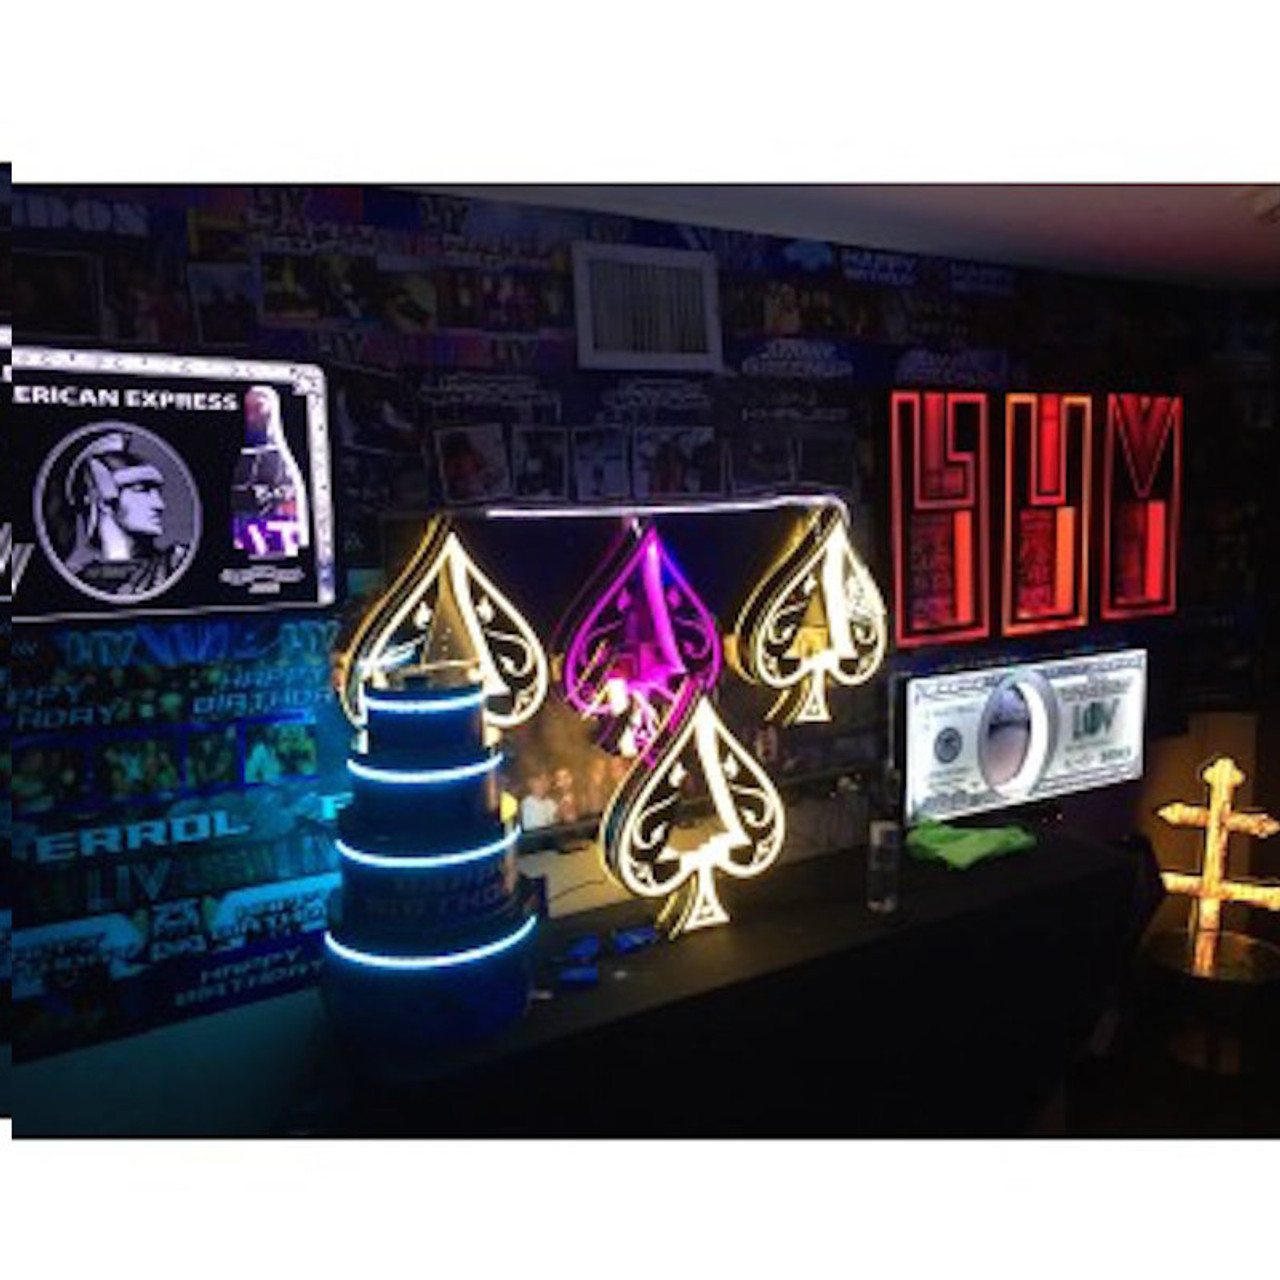 Royale_Champagne_Bottle_service_delivery_presenter_carrier_holder_caddy_tray_Custom_Made_Light Up_LED_LIV_Miami_Nightclubshop_caddie